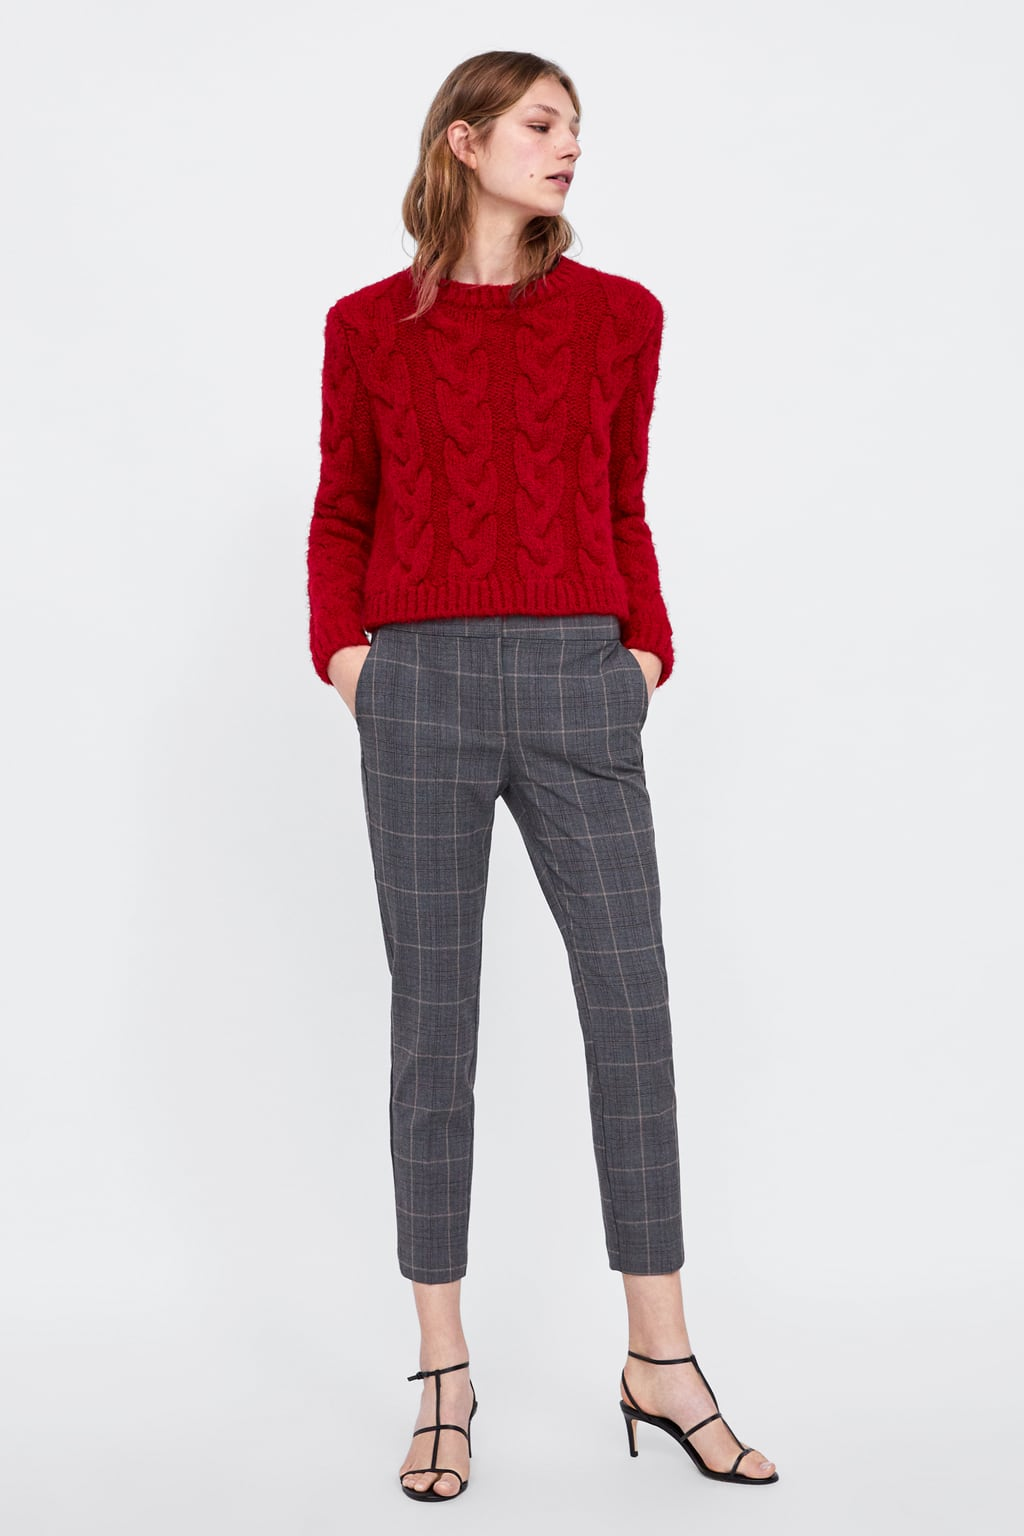 Checked Jogging Trousers  Trouserswoman New Collection by Zara